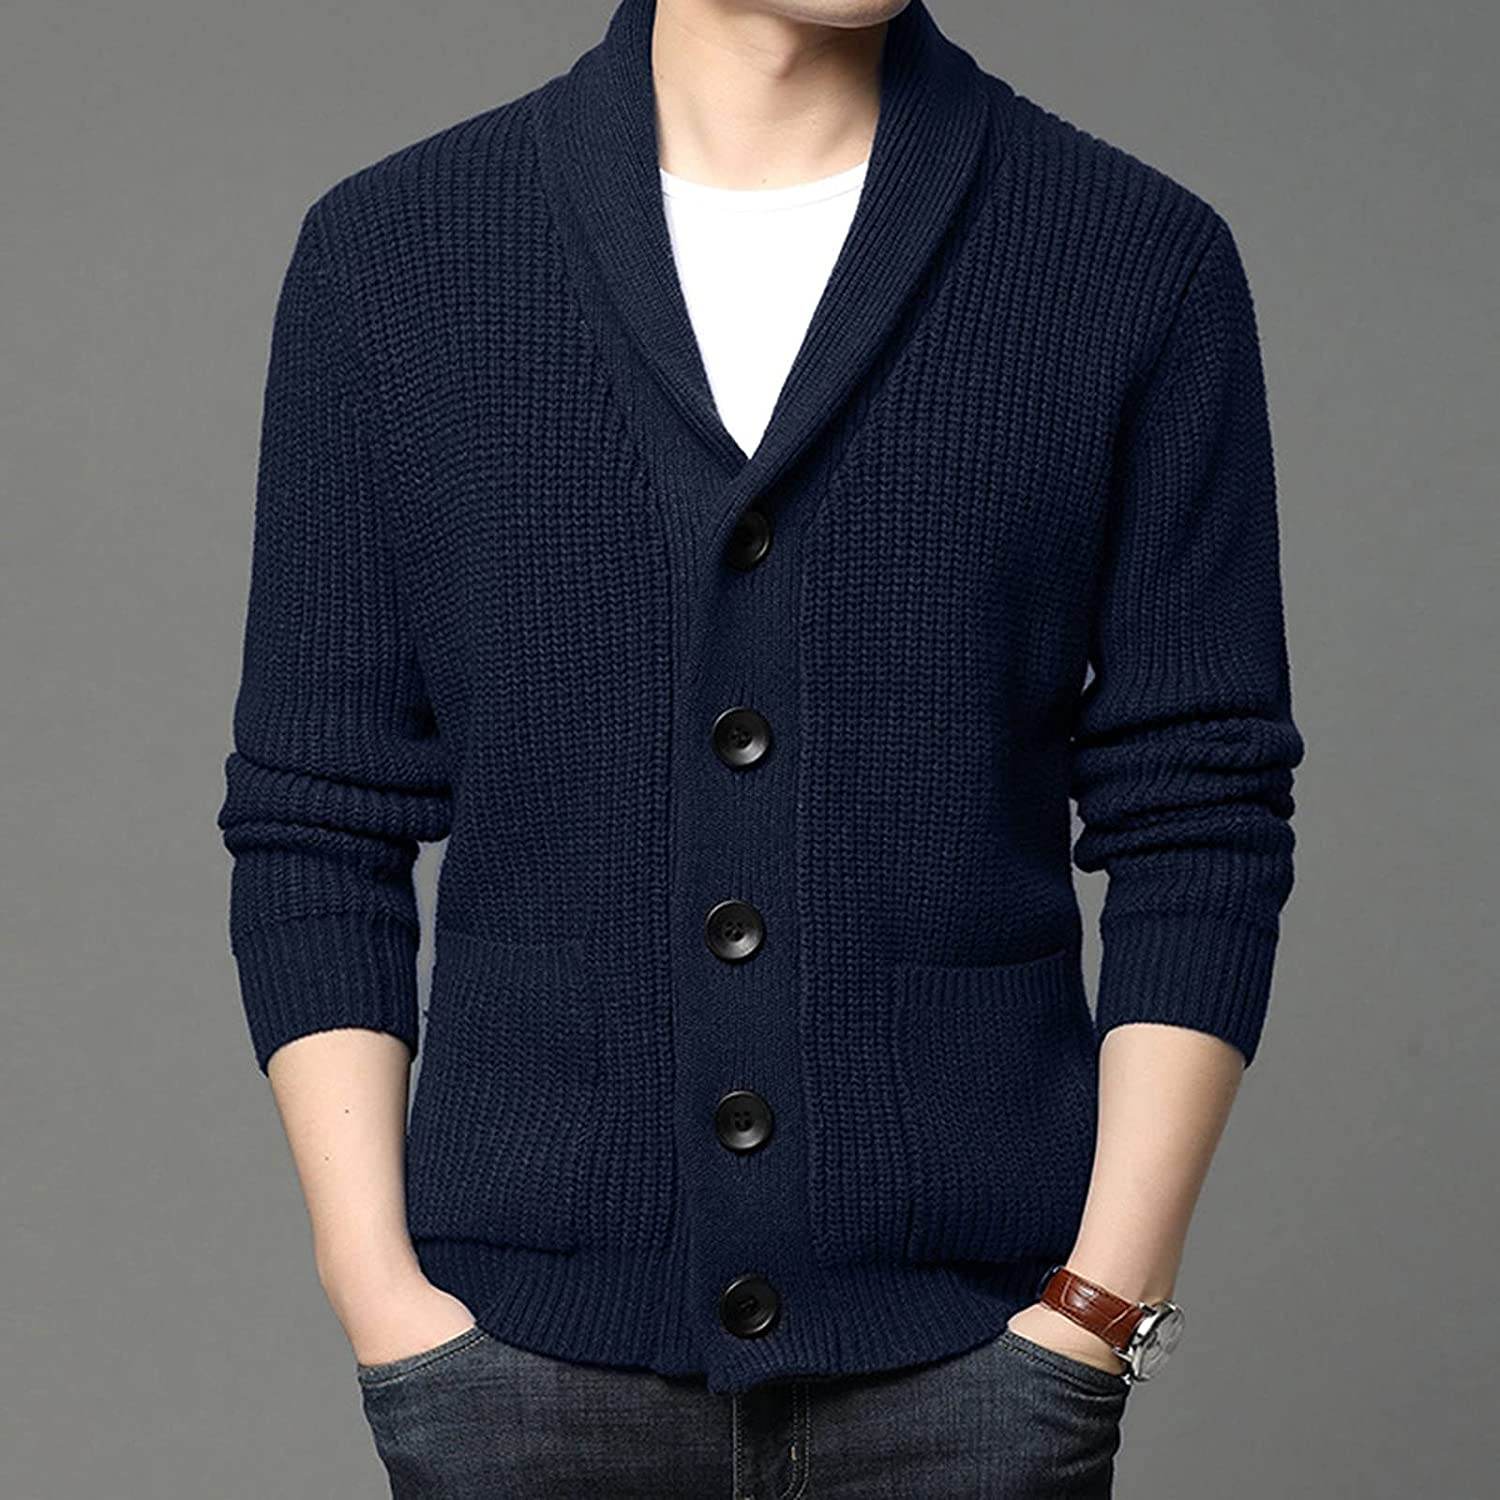 Men's Pullover Autumn and Winter O Neck Long Sleeve Solid Sweater Blouse and Scarf 2 Pieces Sets 2021